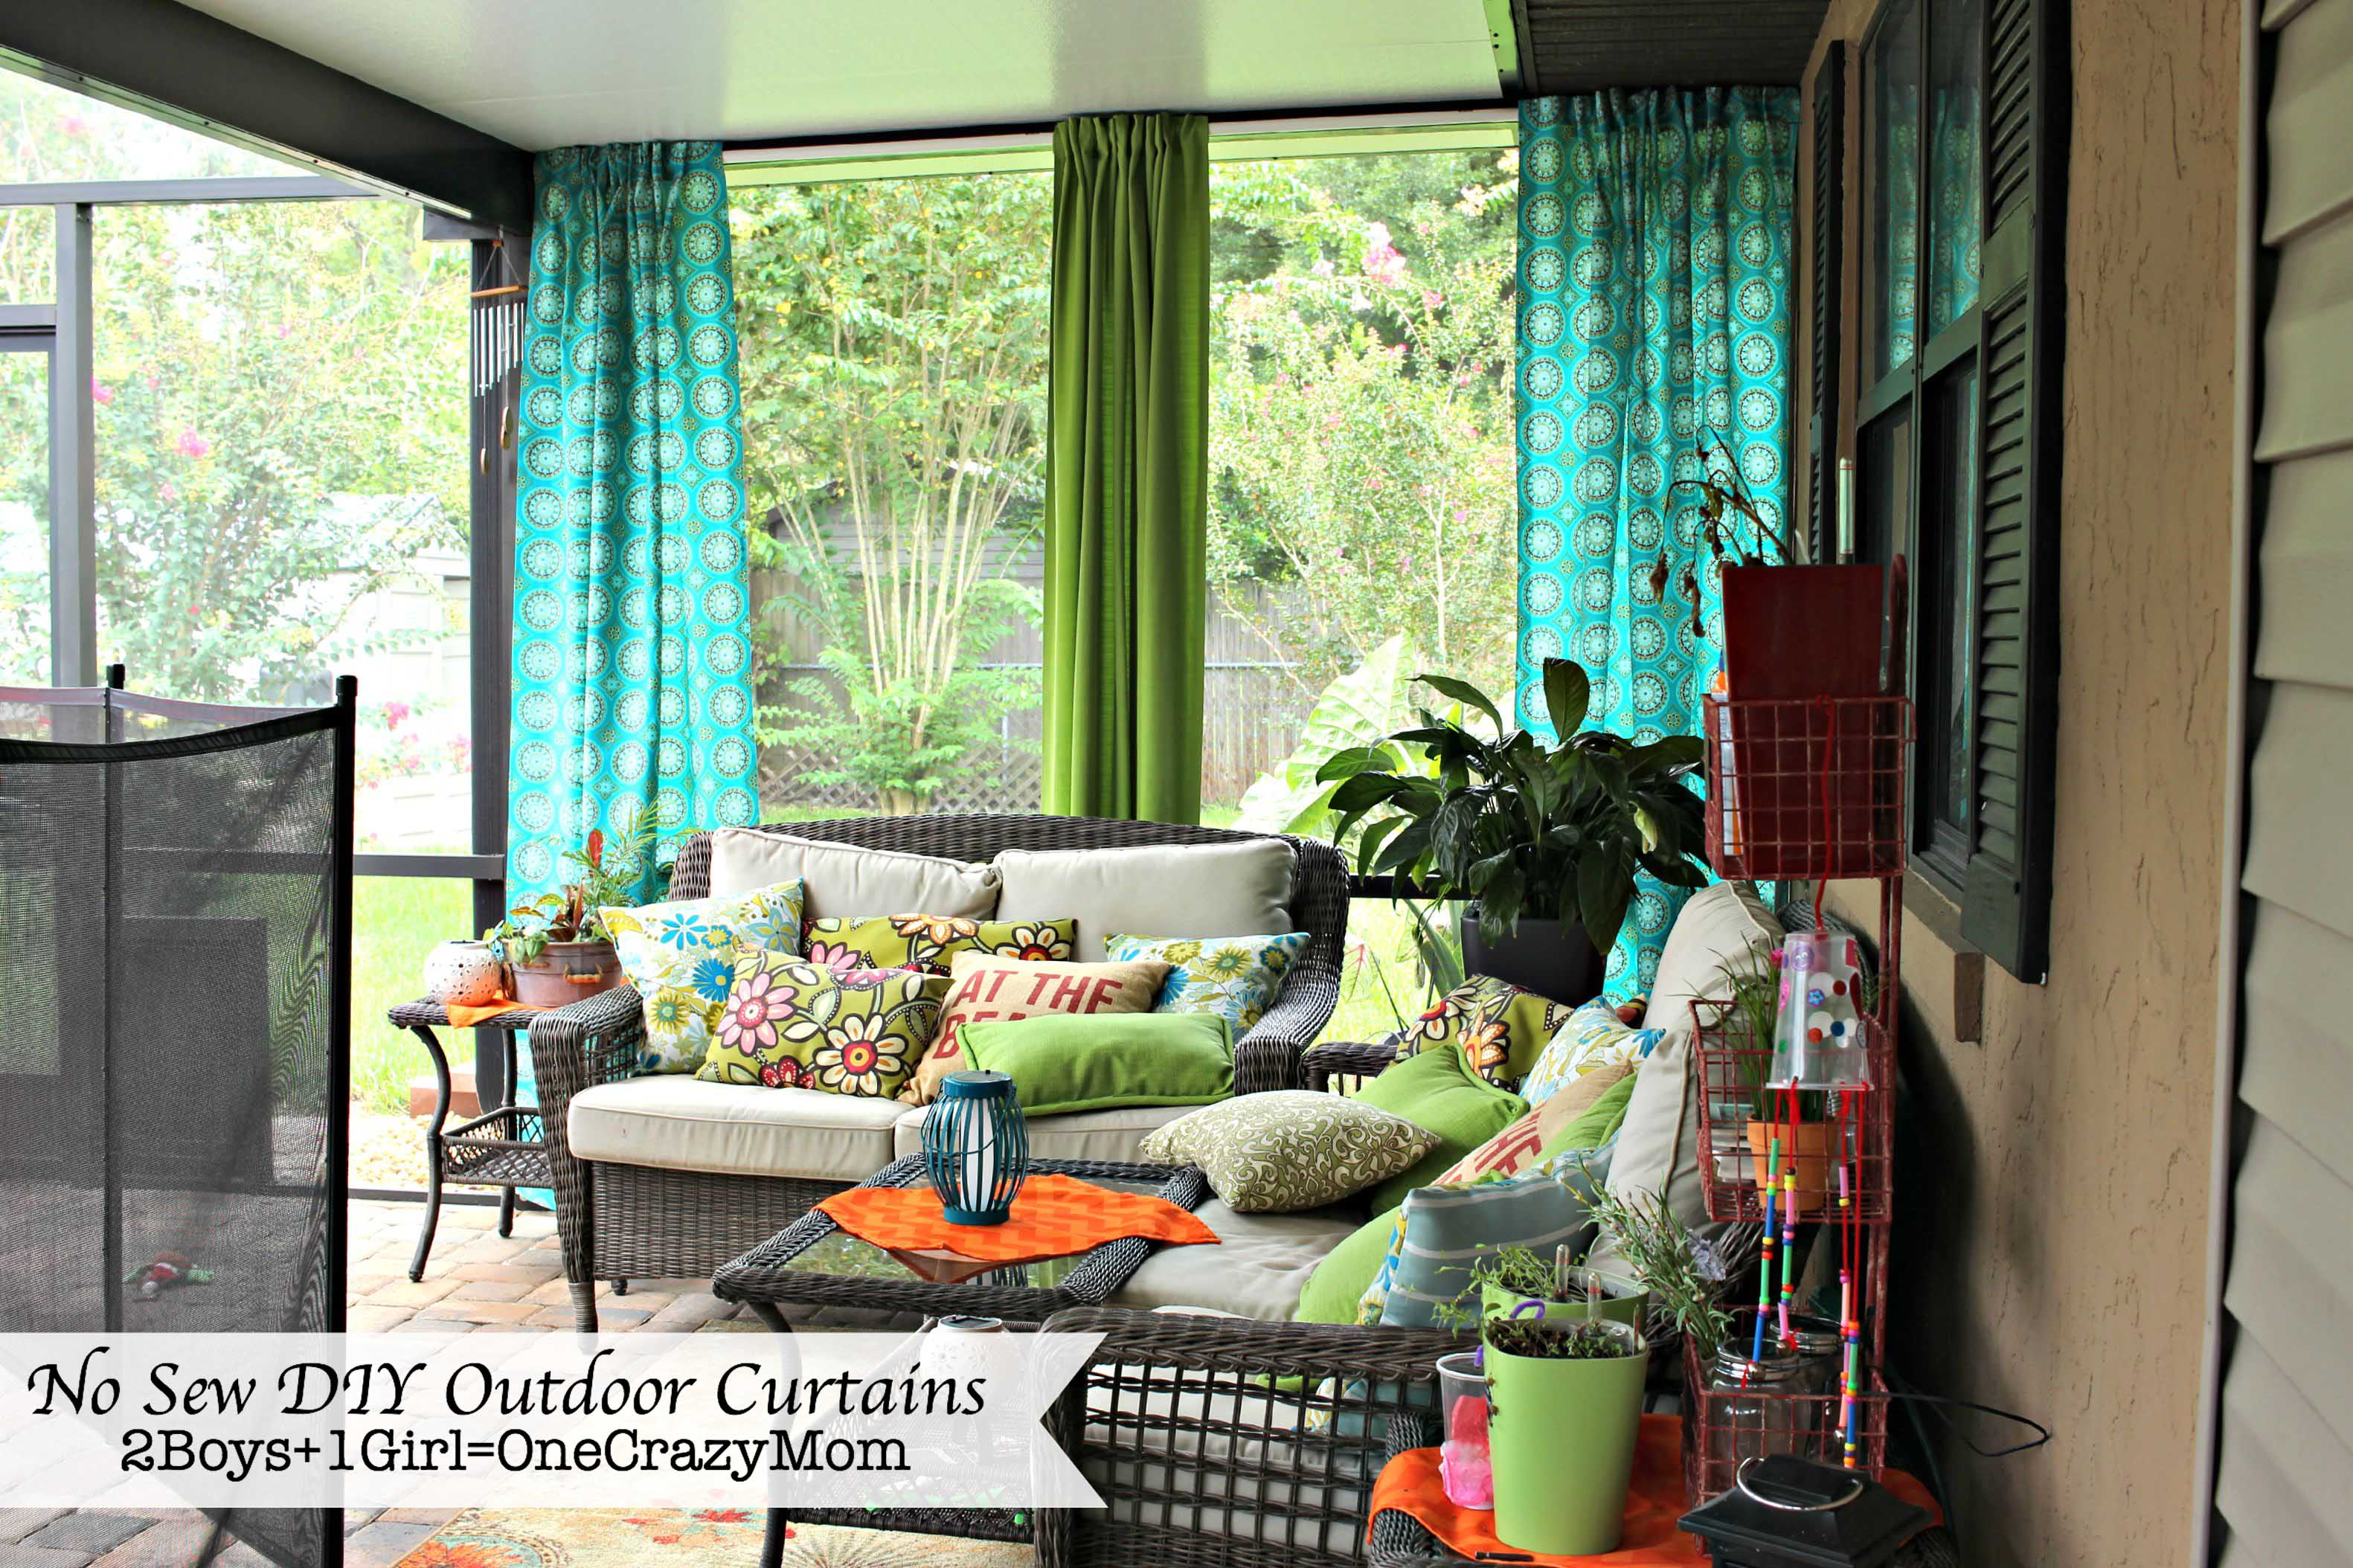 Diy outdoor curtains - Make Your No Sew Diy Outdoor Curtains On A Budget 2 Boys 1 Girl One Crazy Mom